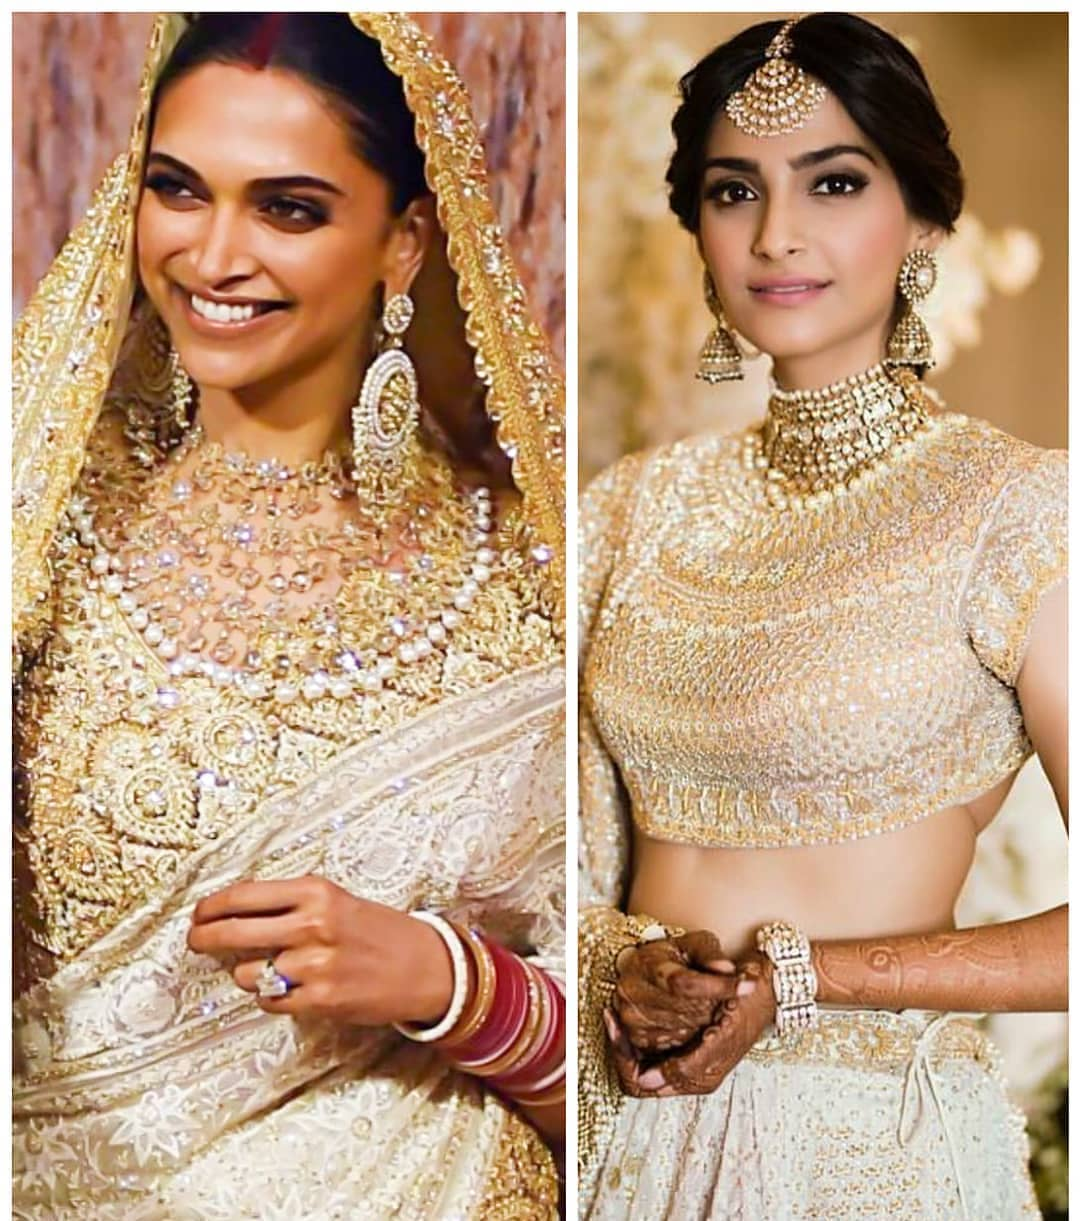 The Double bridal Dupatta trend is on